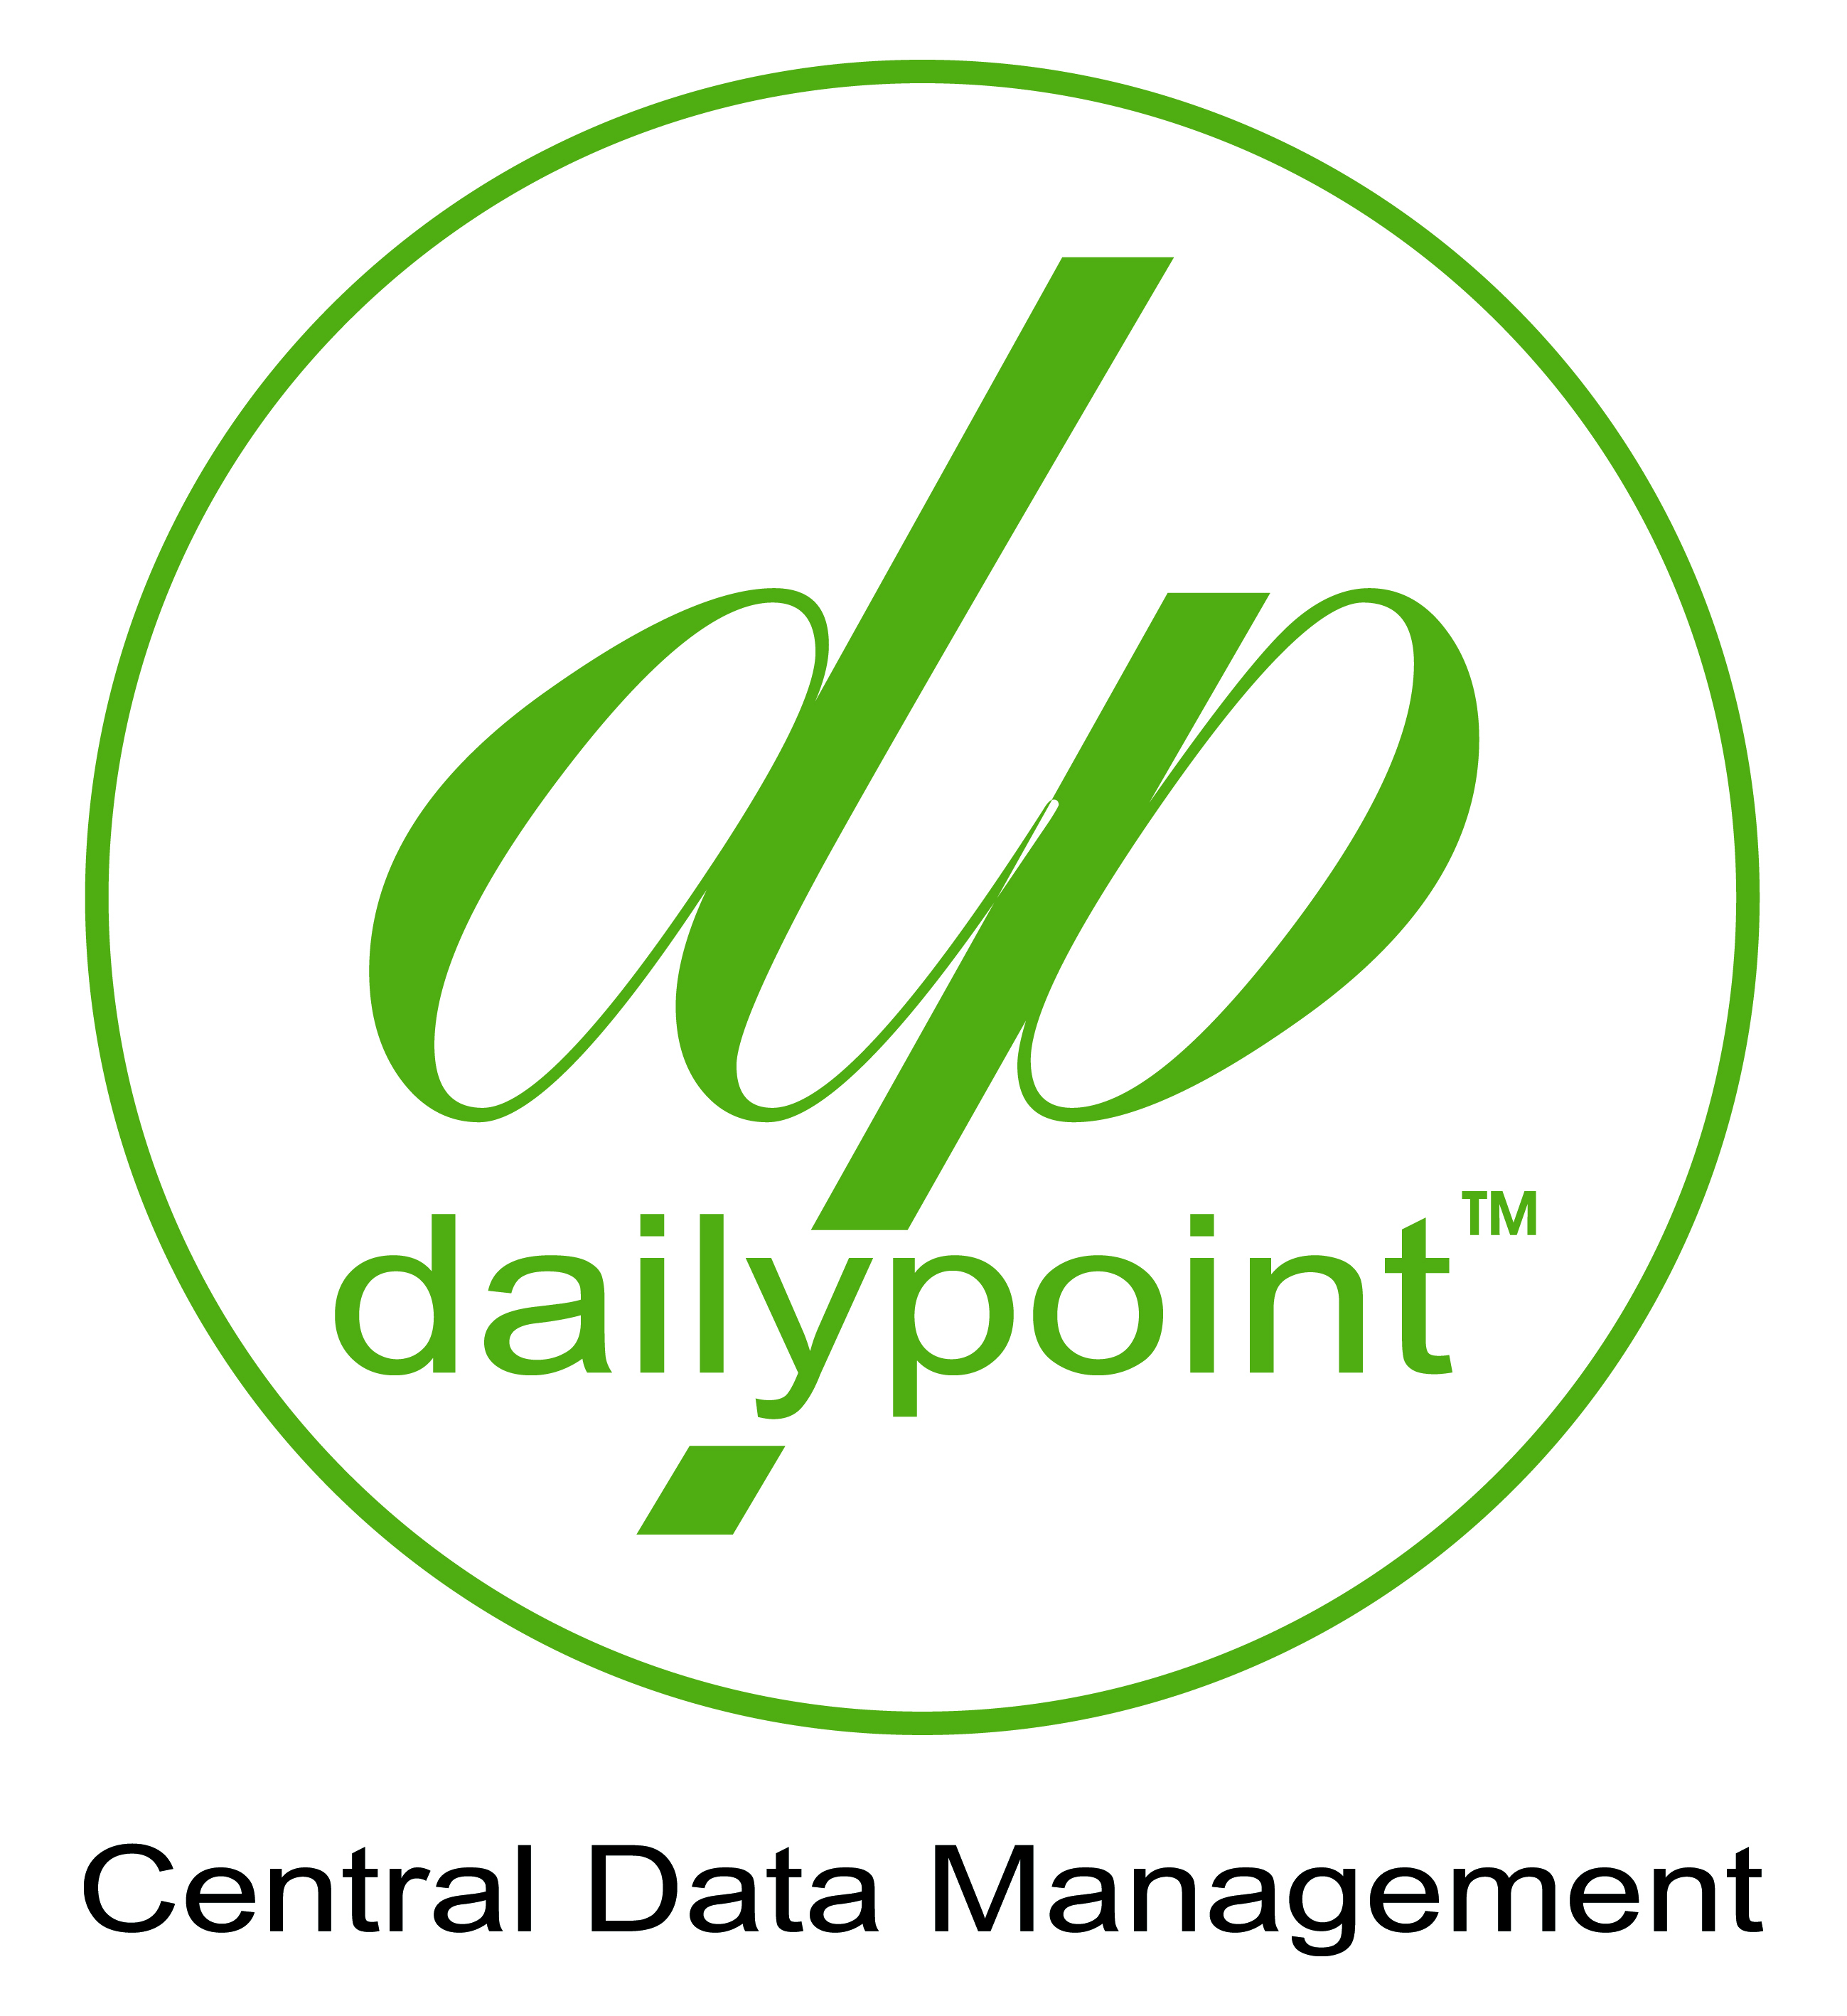 Dailypoint